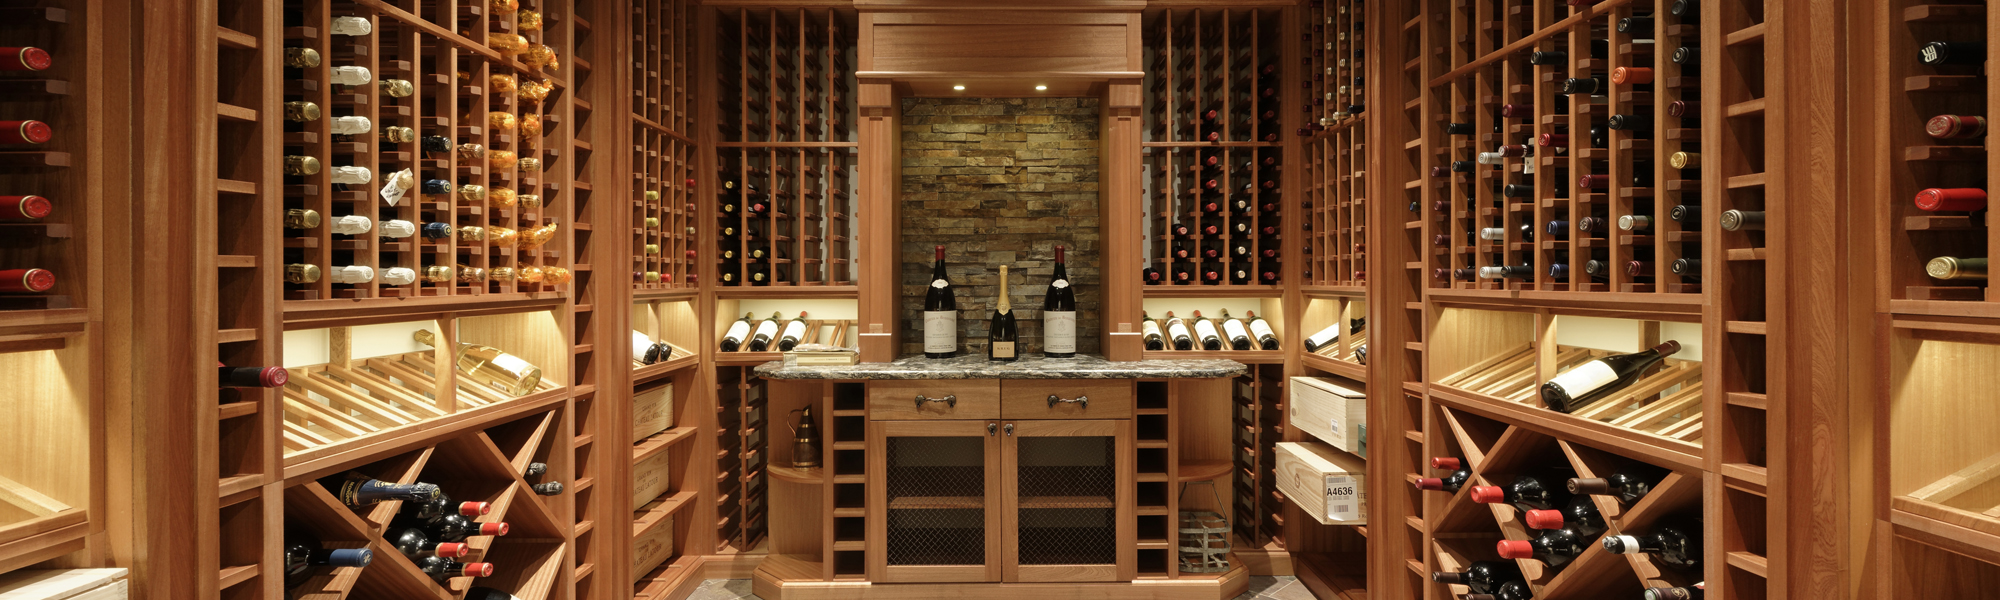 McLean Redesign with Wine Cellar